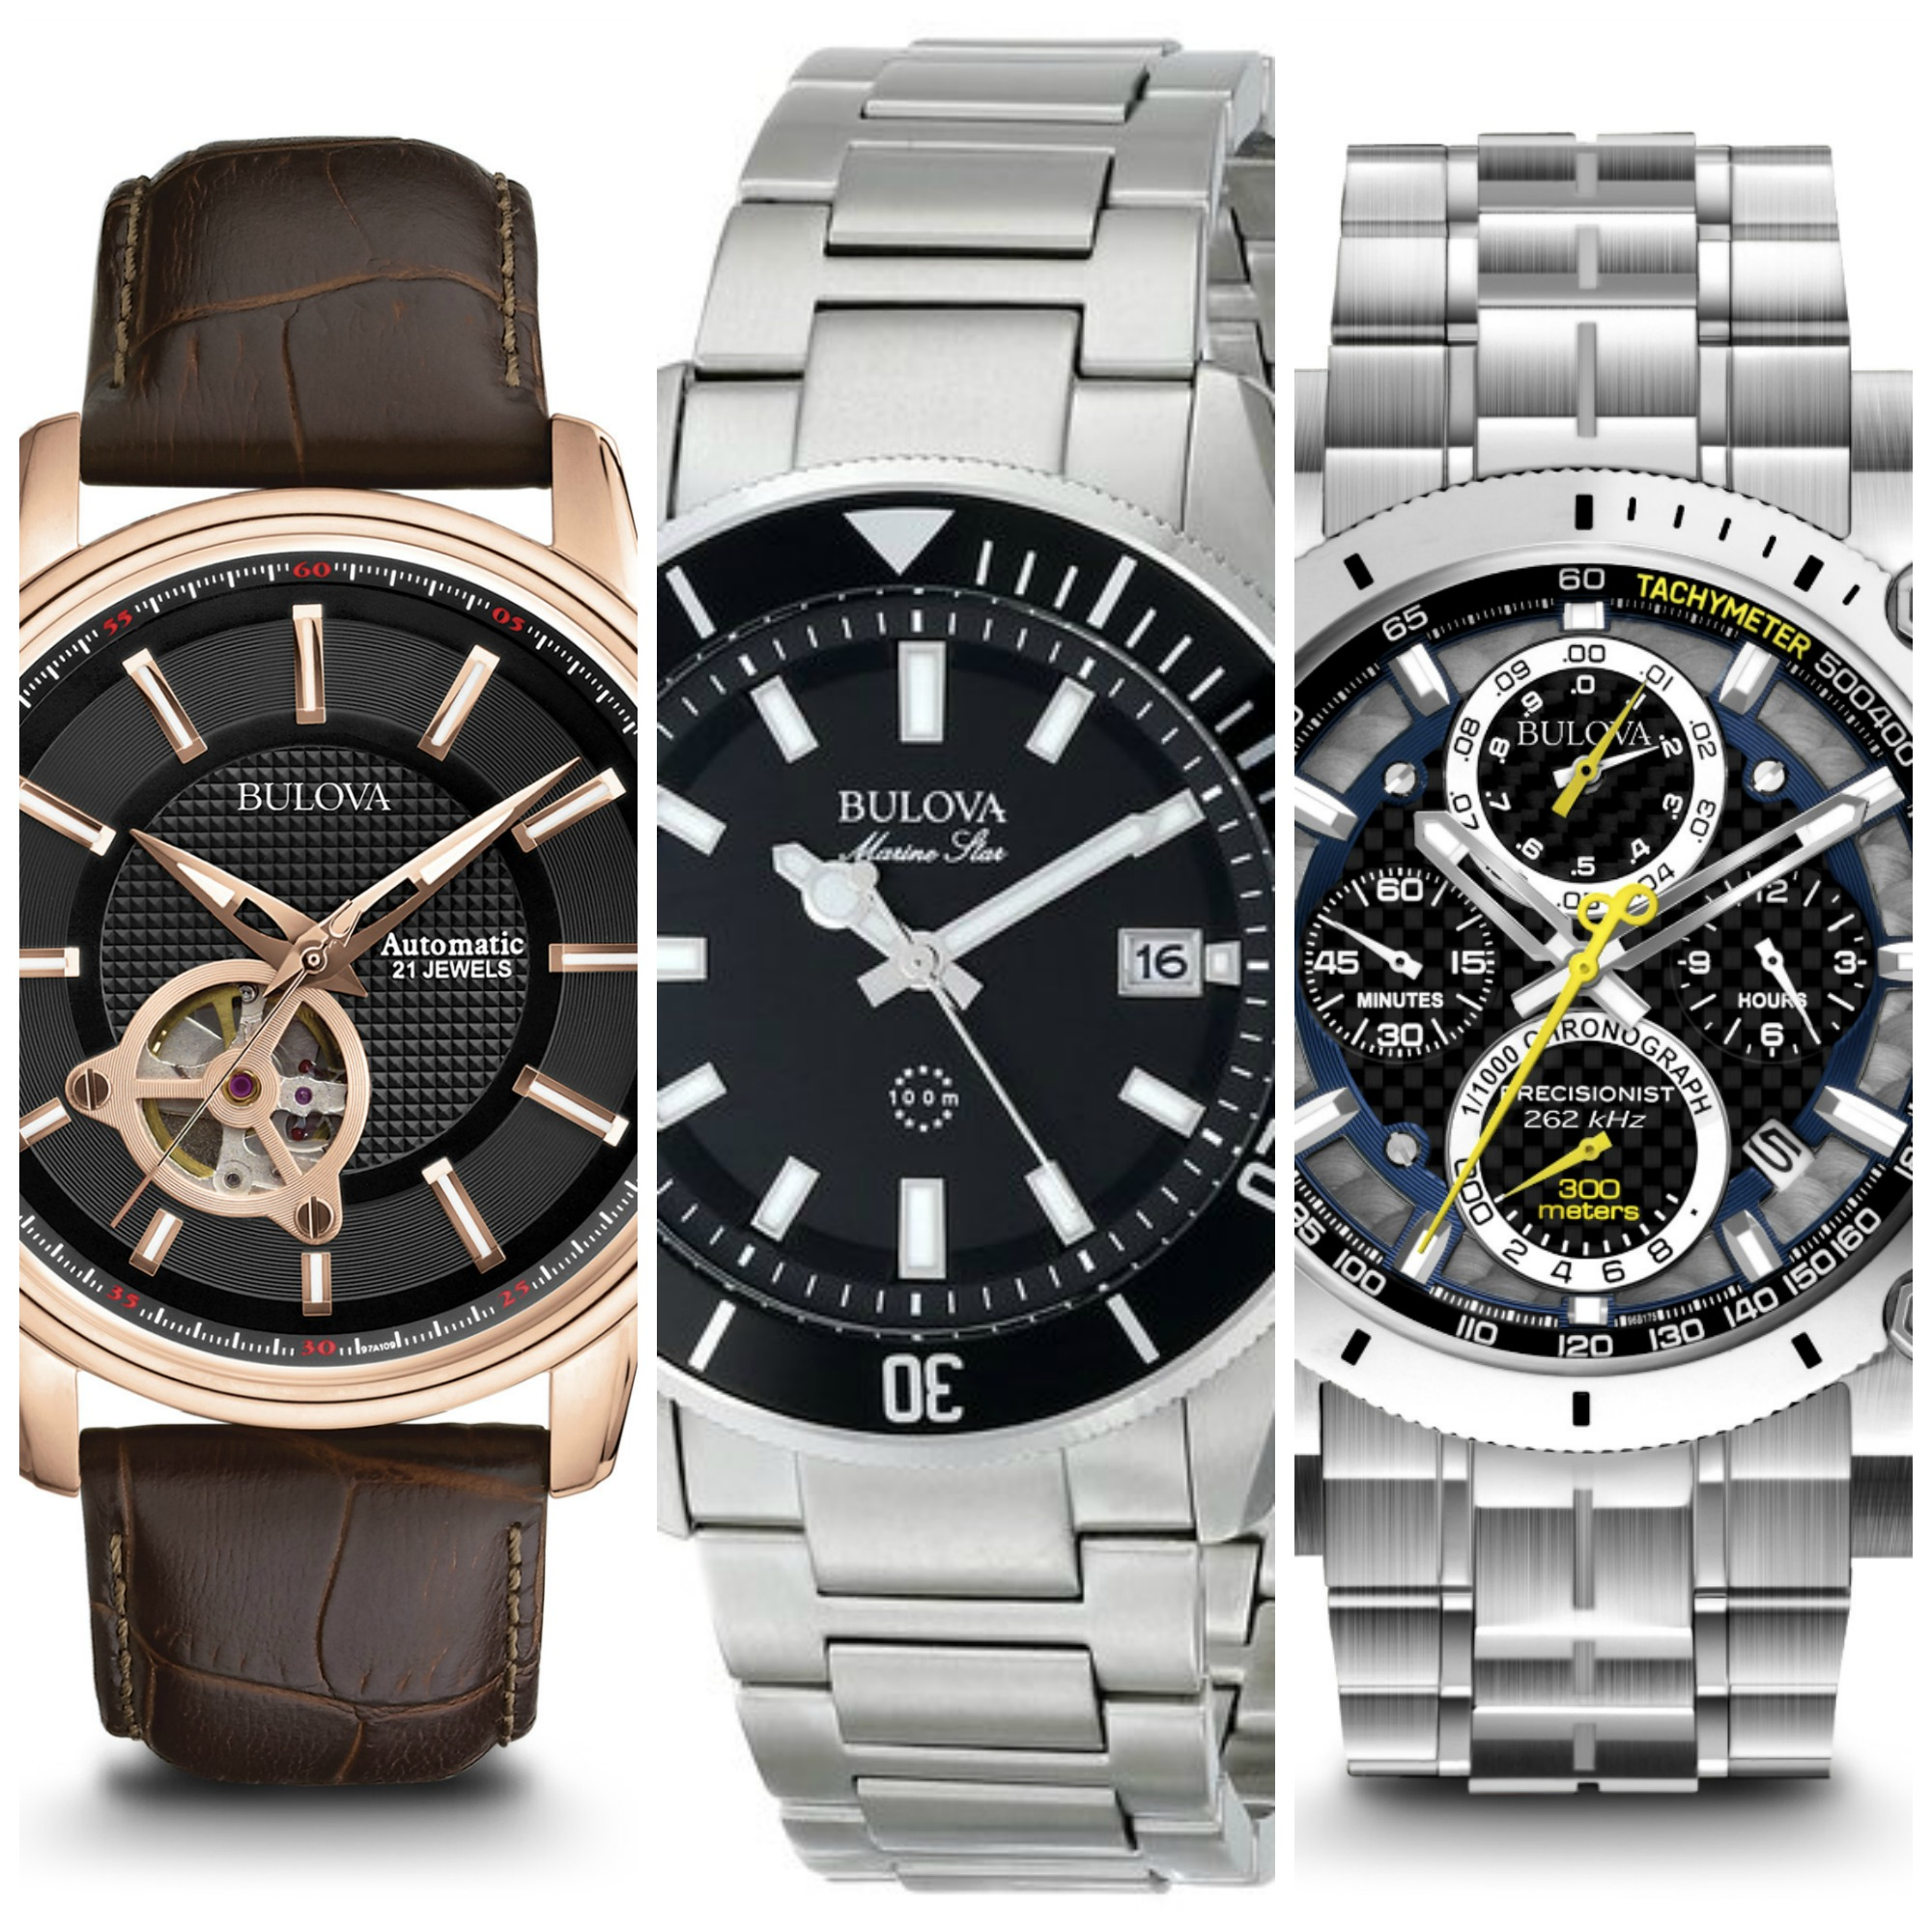 lakh escale good watches india under rs content louis vuitton gq